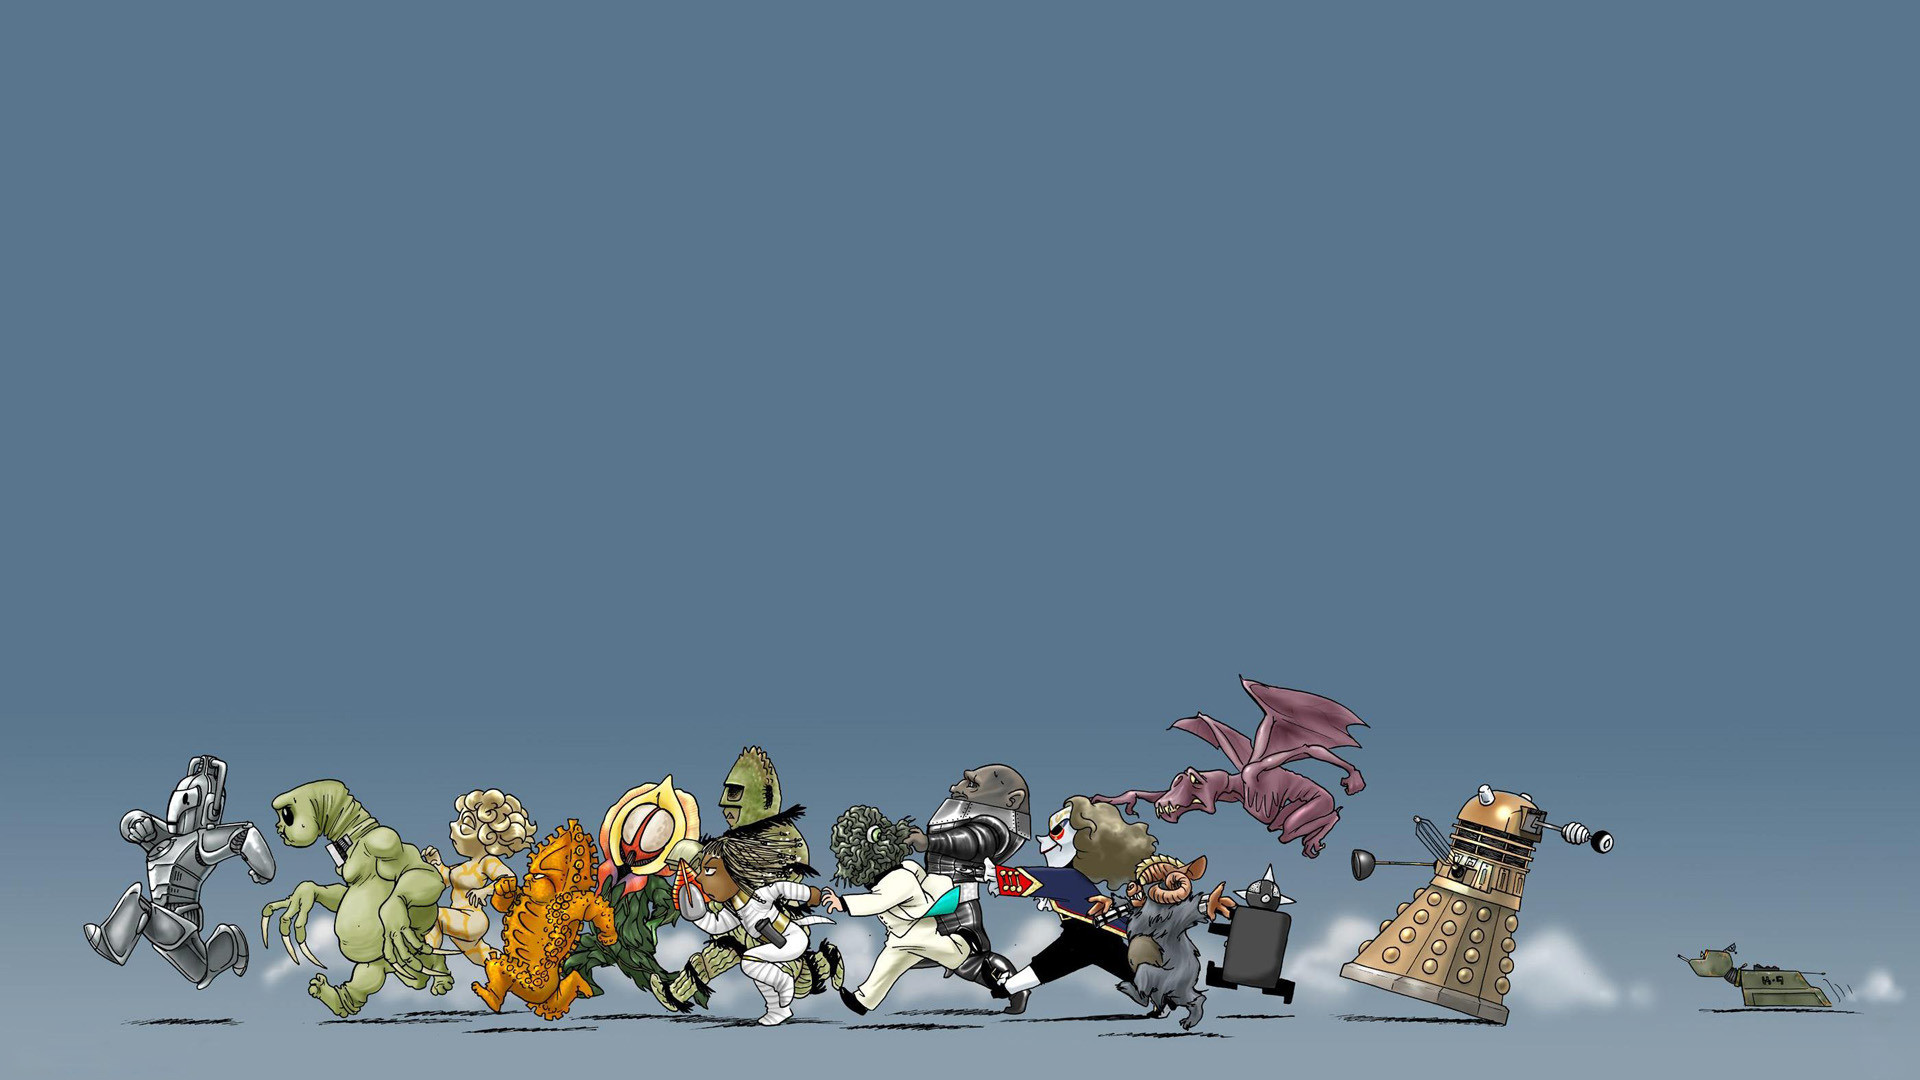 Funny Doctor Who characters HD Wallpaper 1920×1080